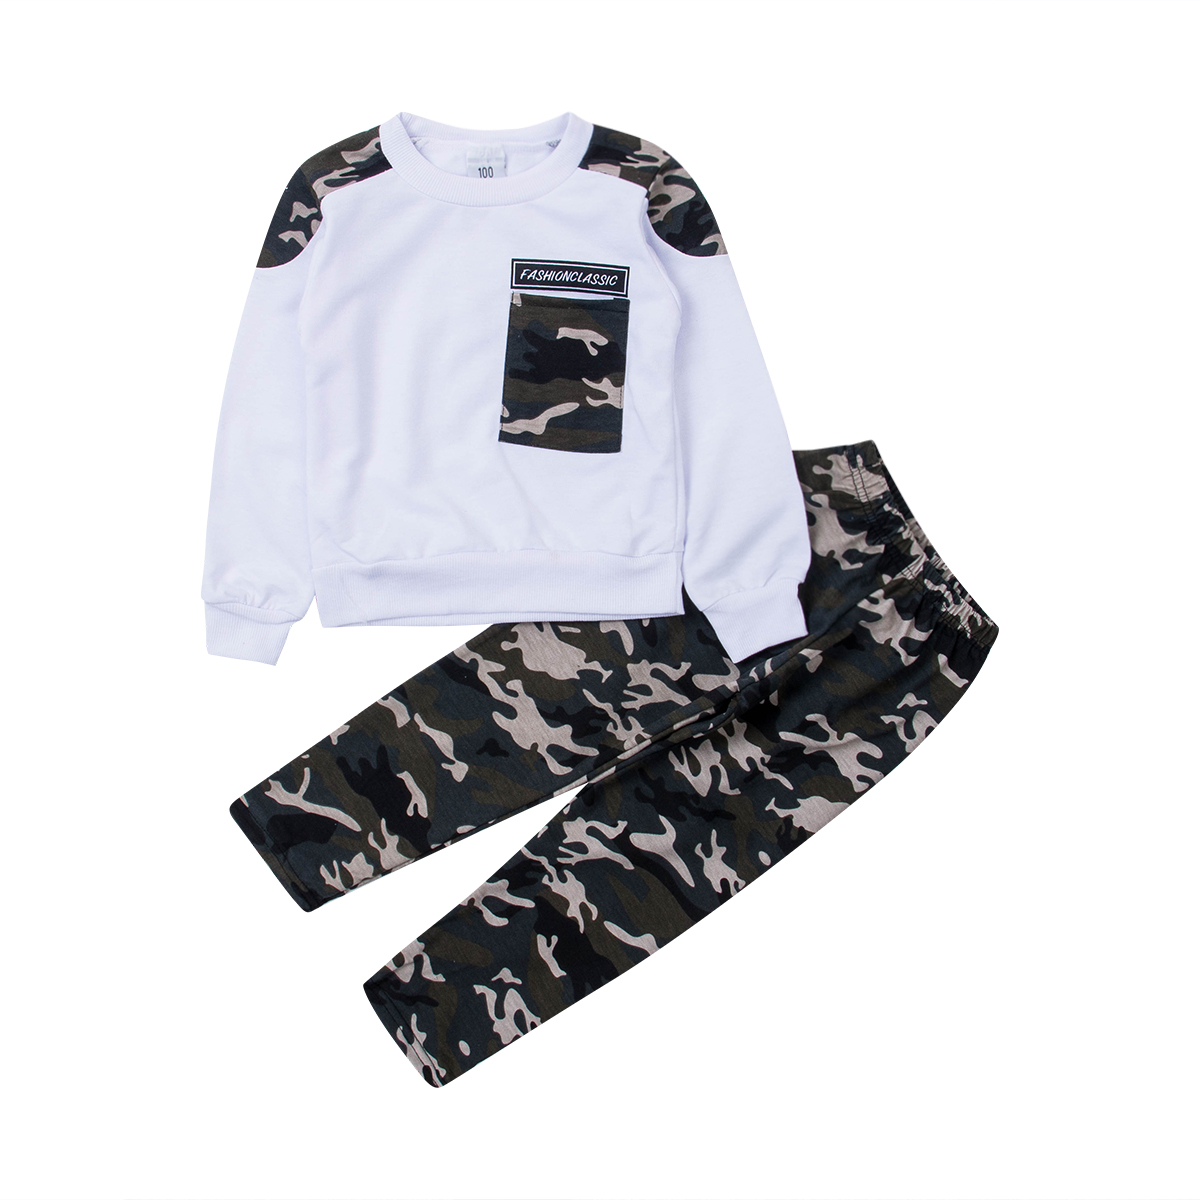 US Toddler Kids Baby Boys Outfits T-shirt Tops+Long Pants Tracksuit Clothes 2PCS